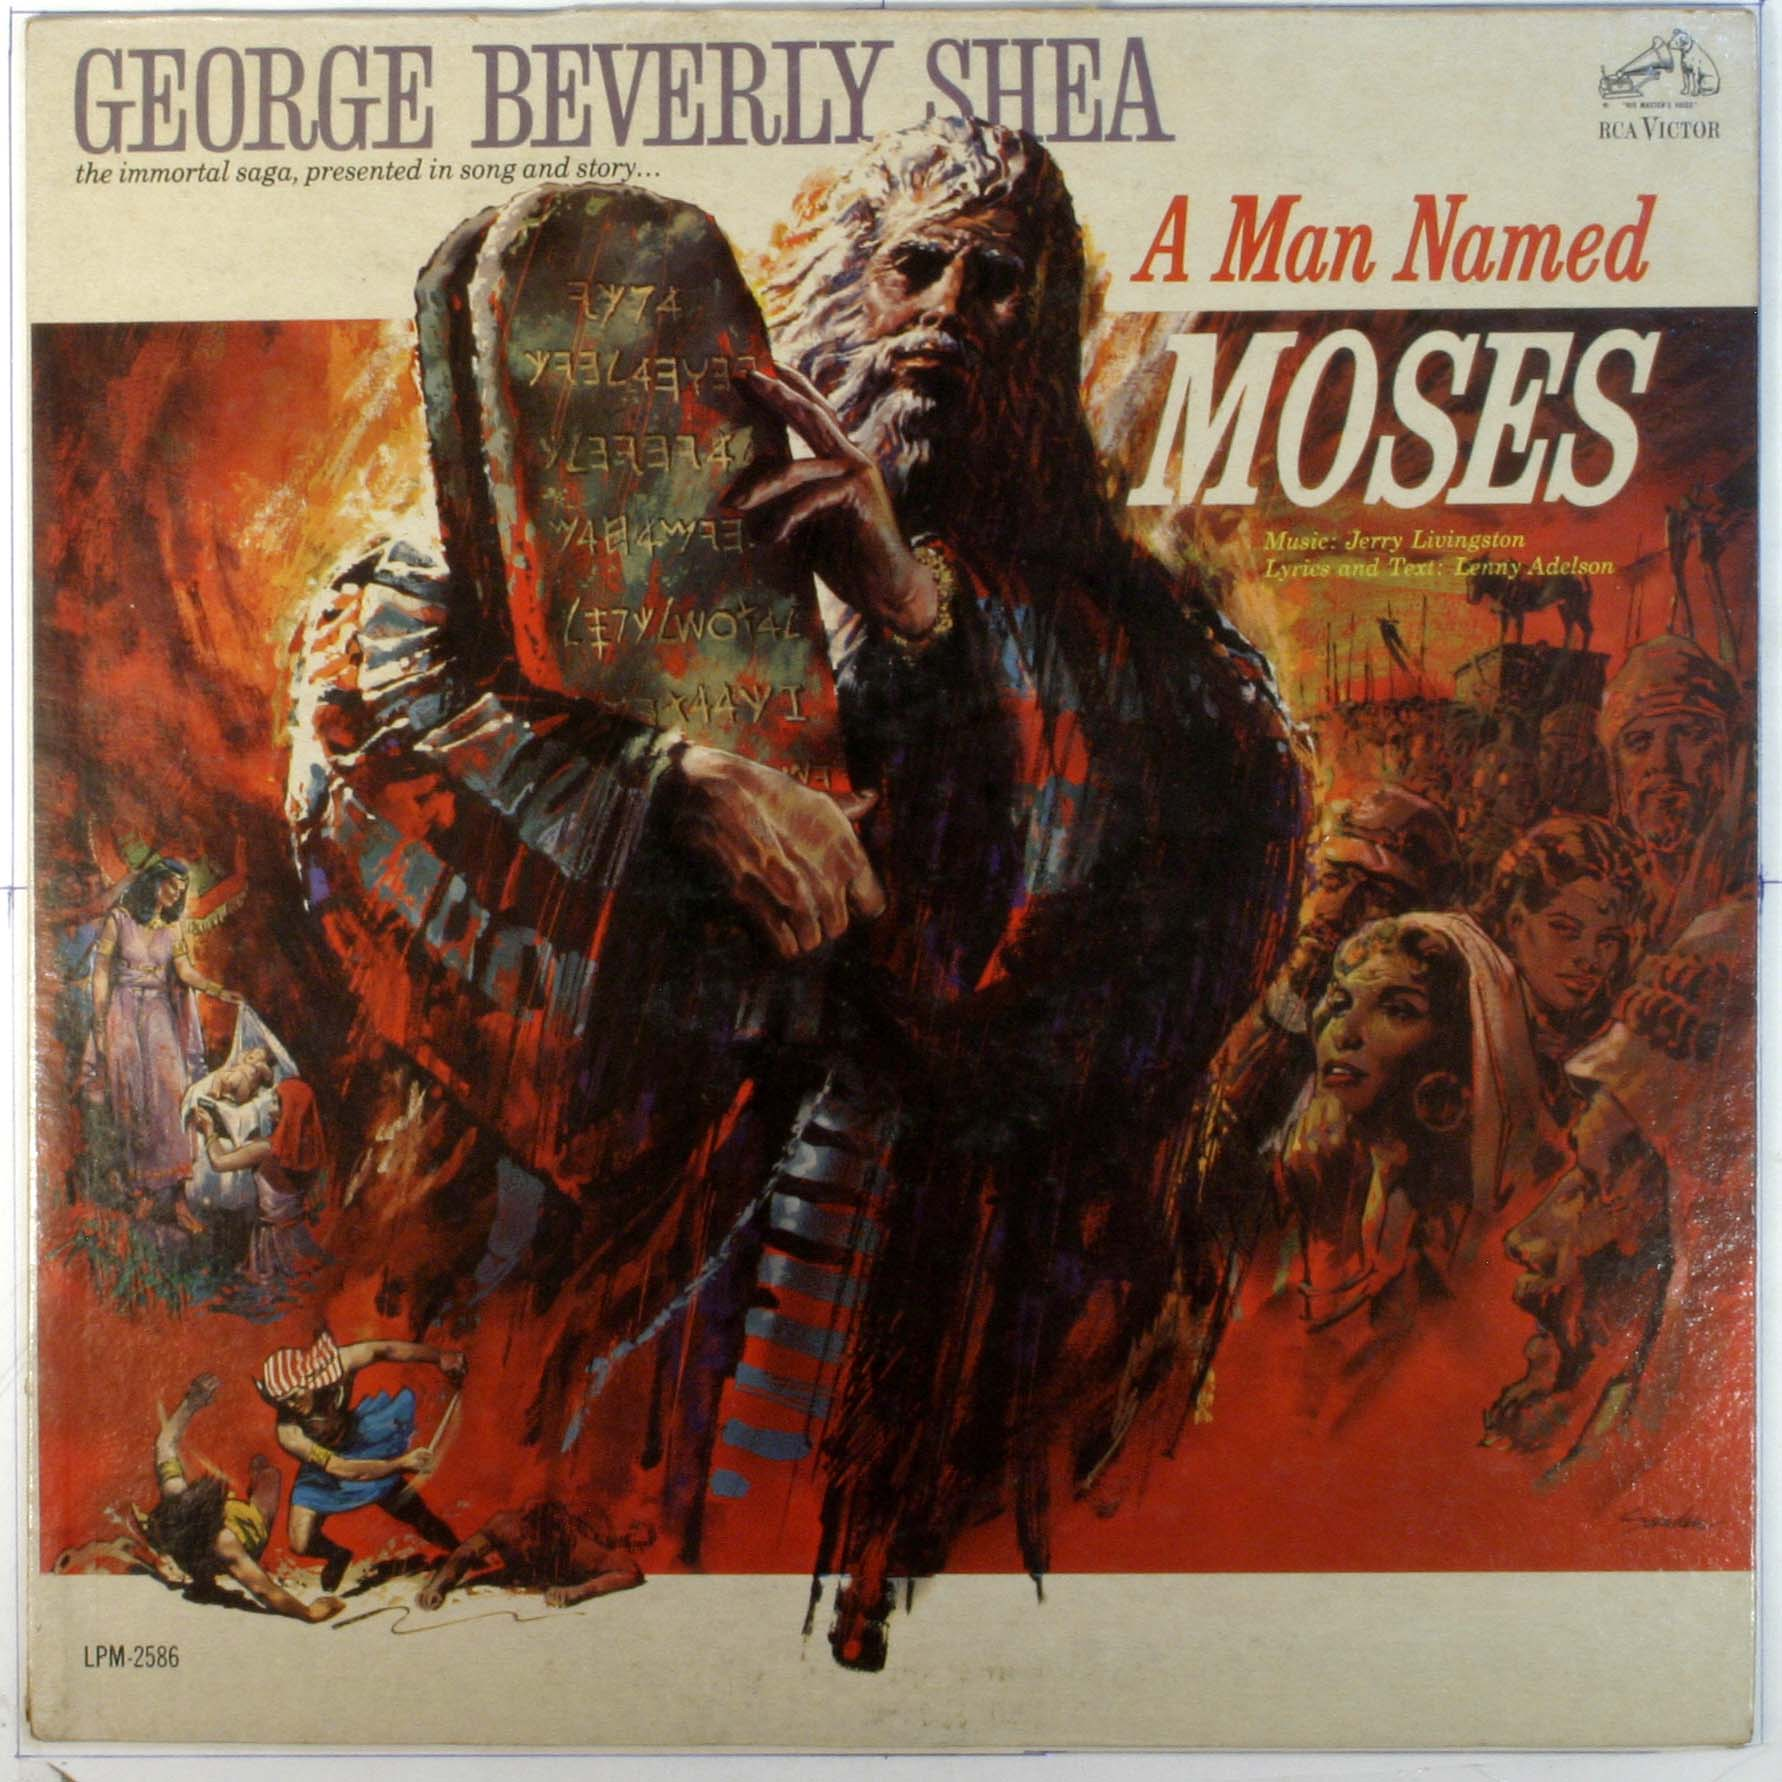 A Man Named Moses